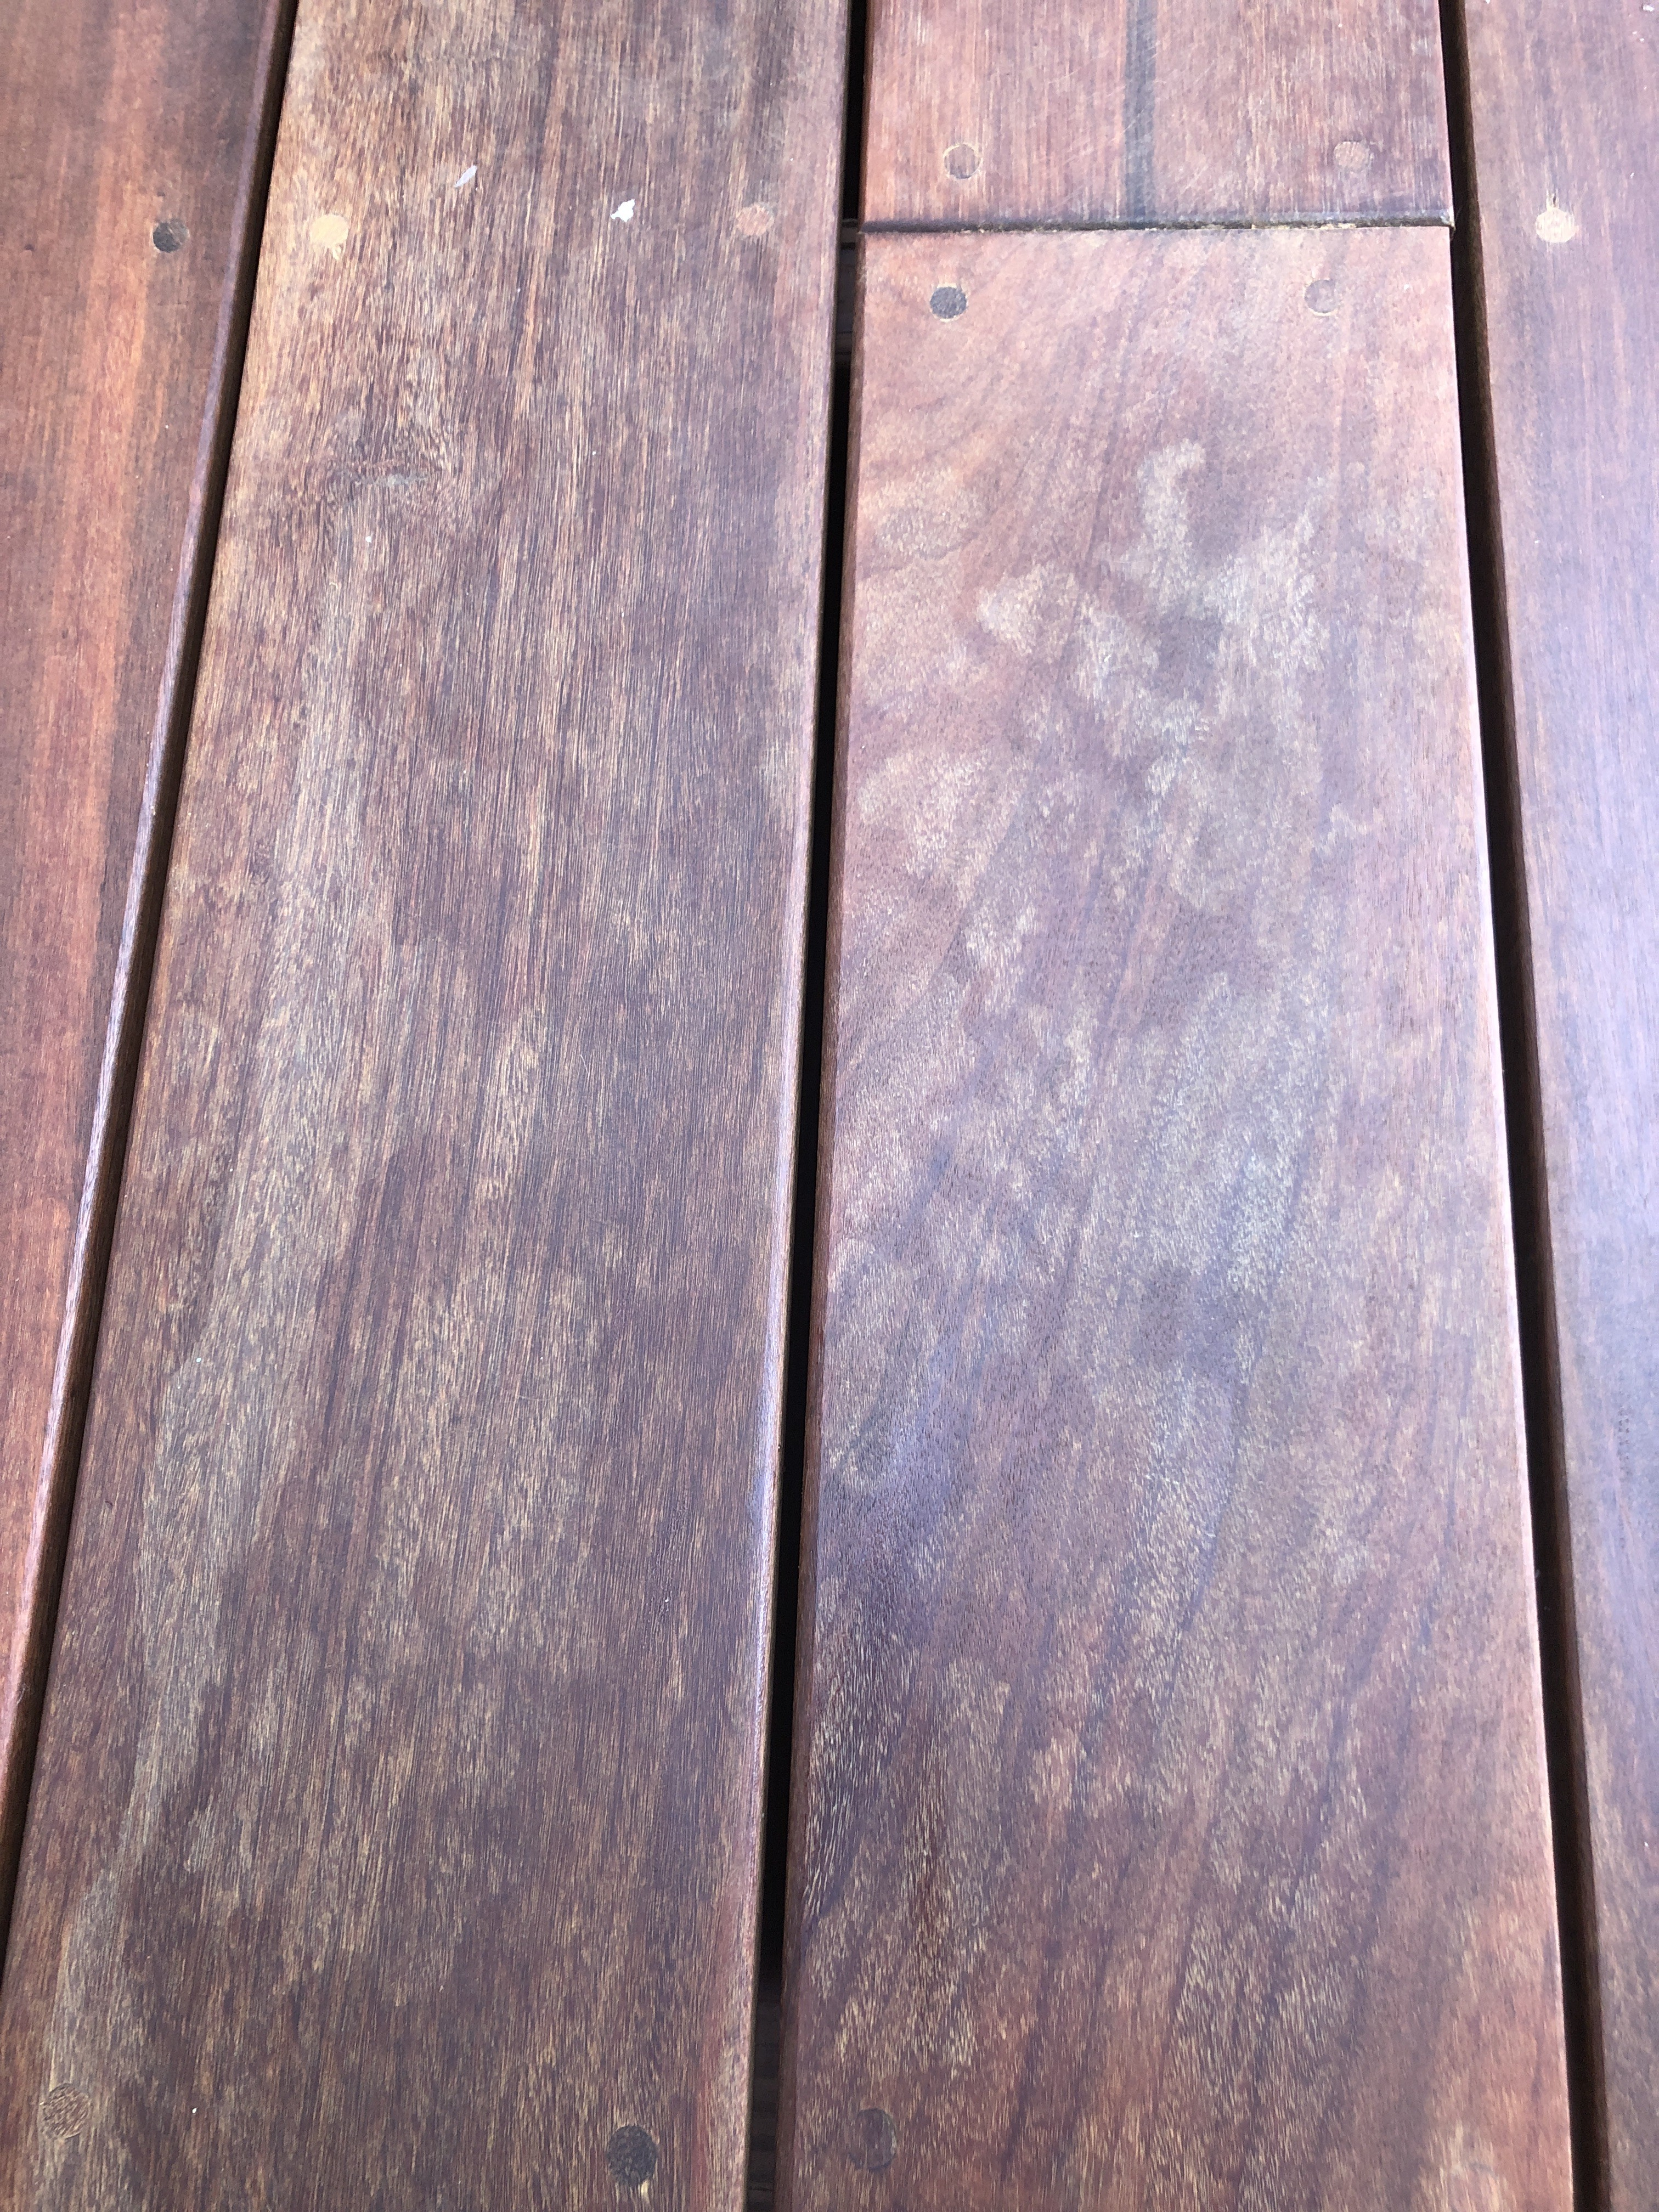 Thompson S Waterseal Finish Review Best Deck Stain Reviews Ratings